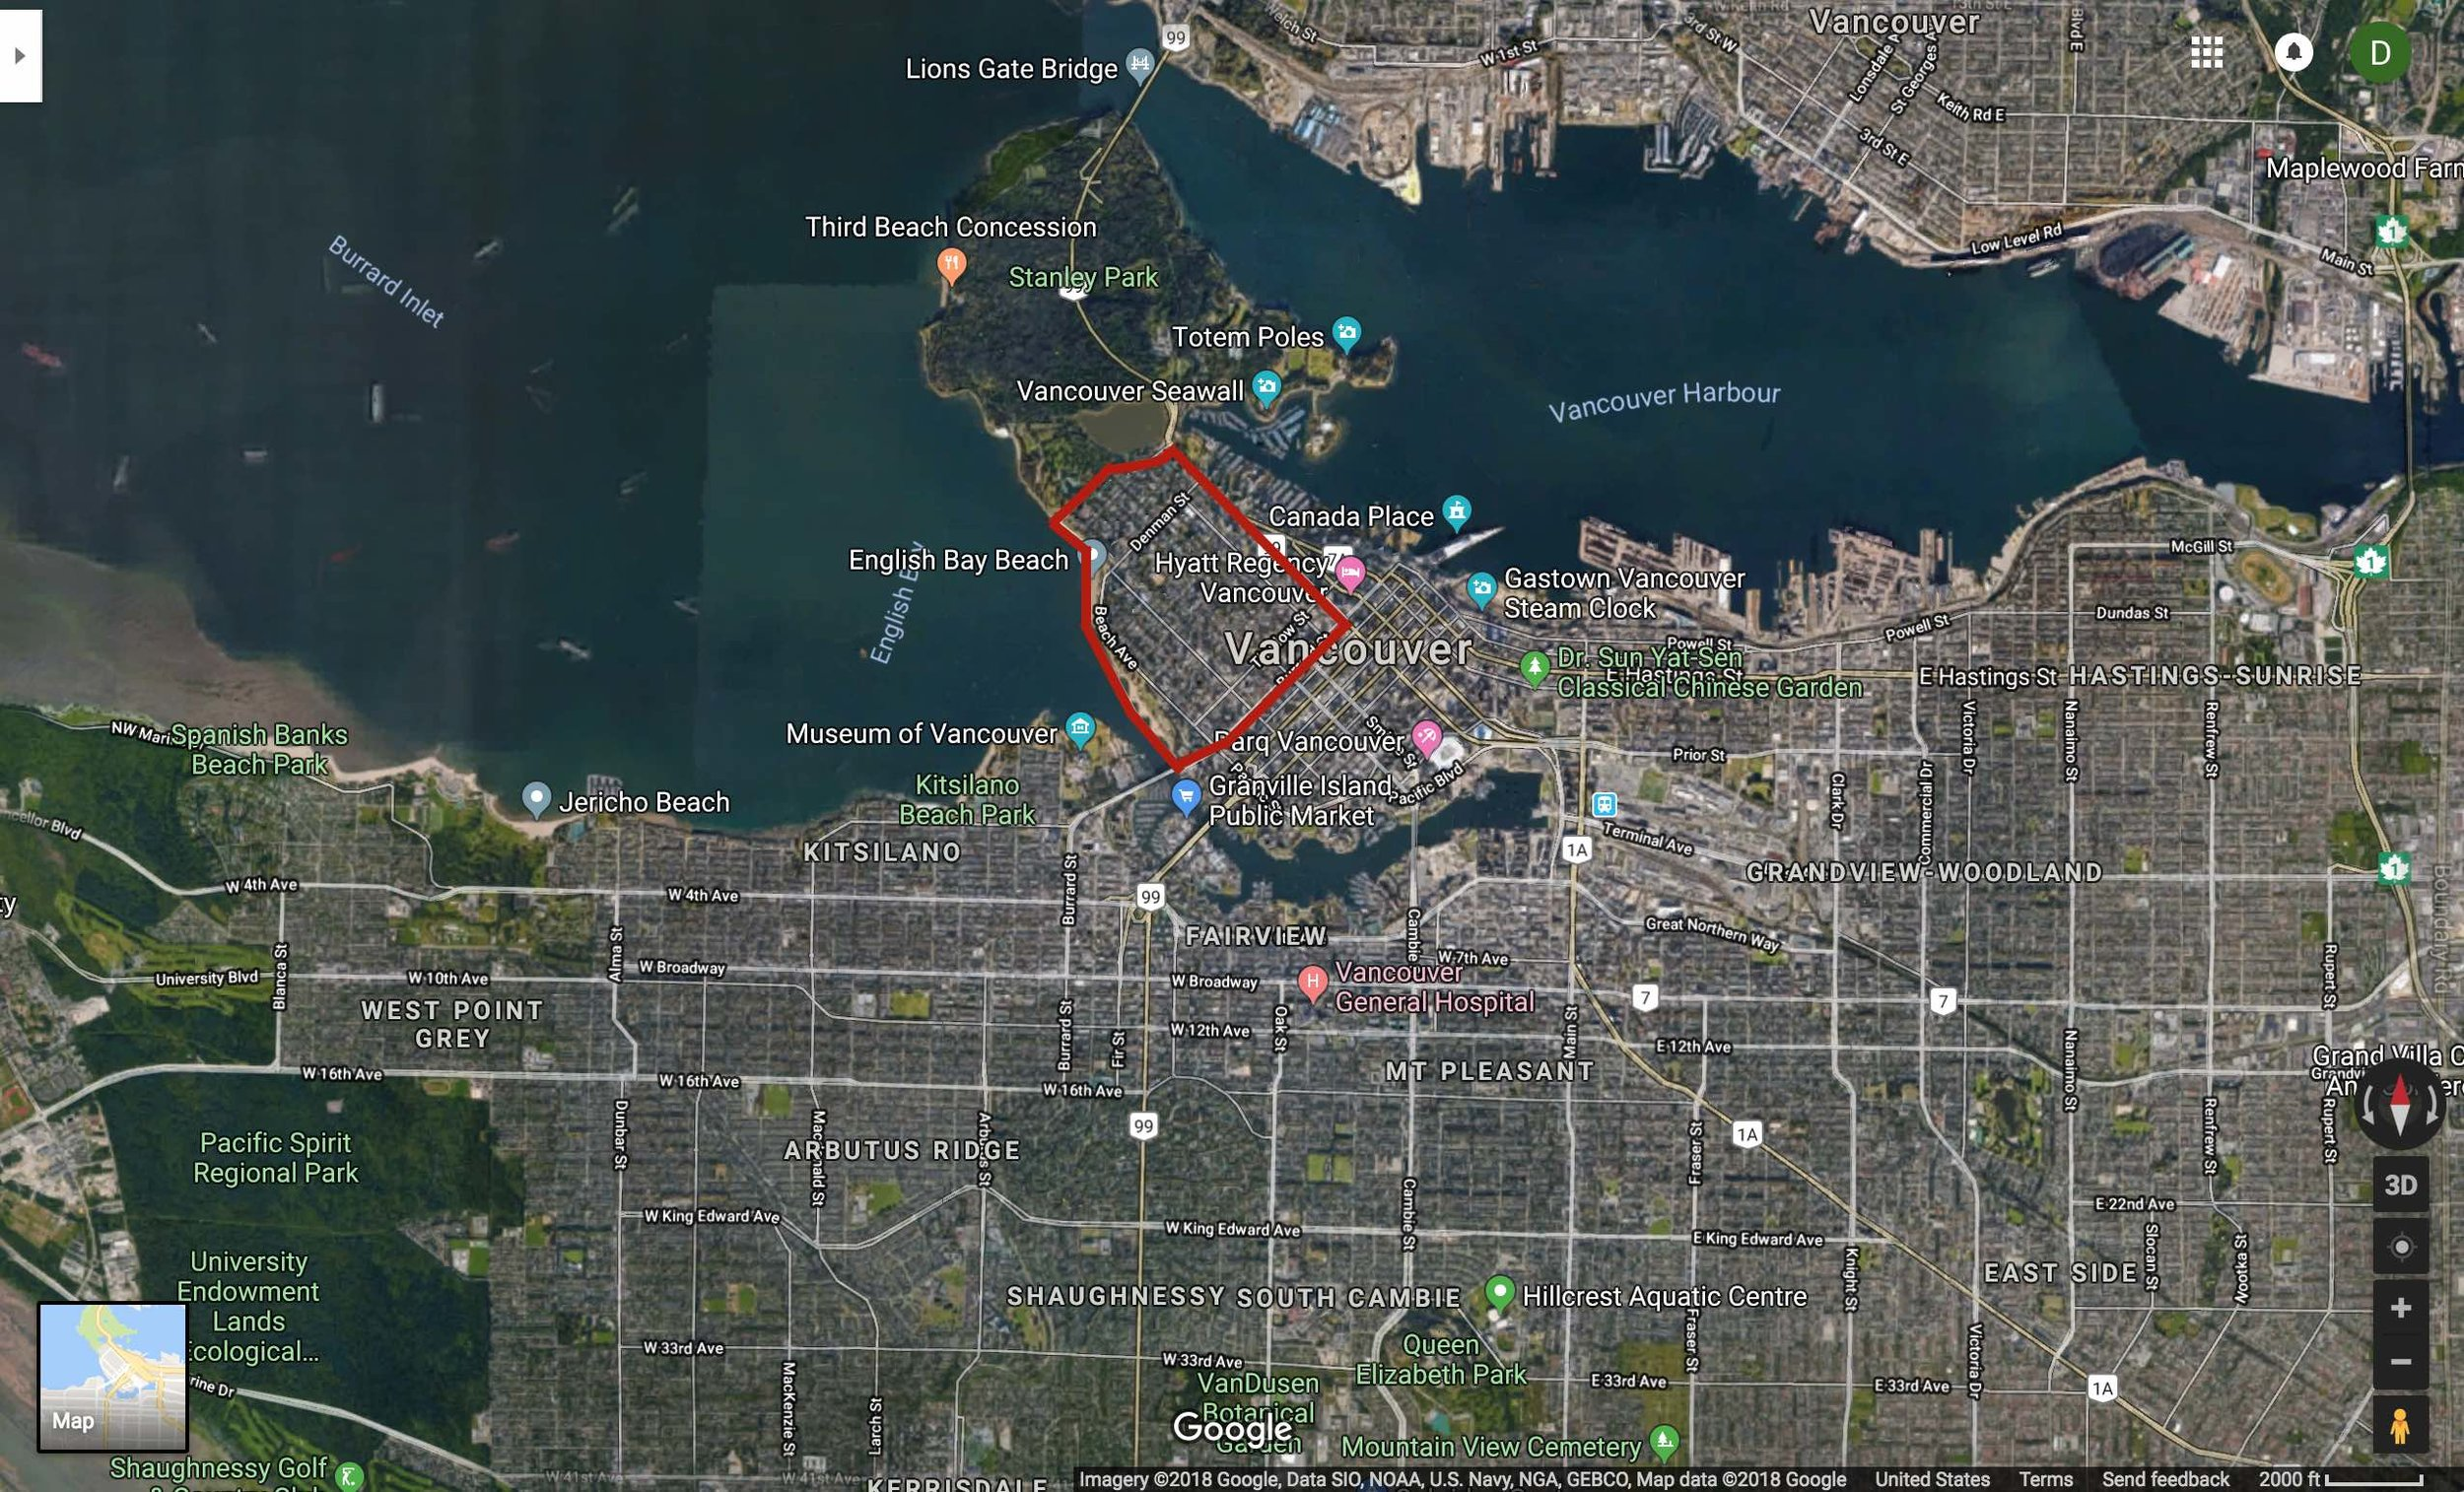 Map of Vancouver with the West End highlighted in red. (Source: Google)